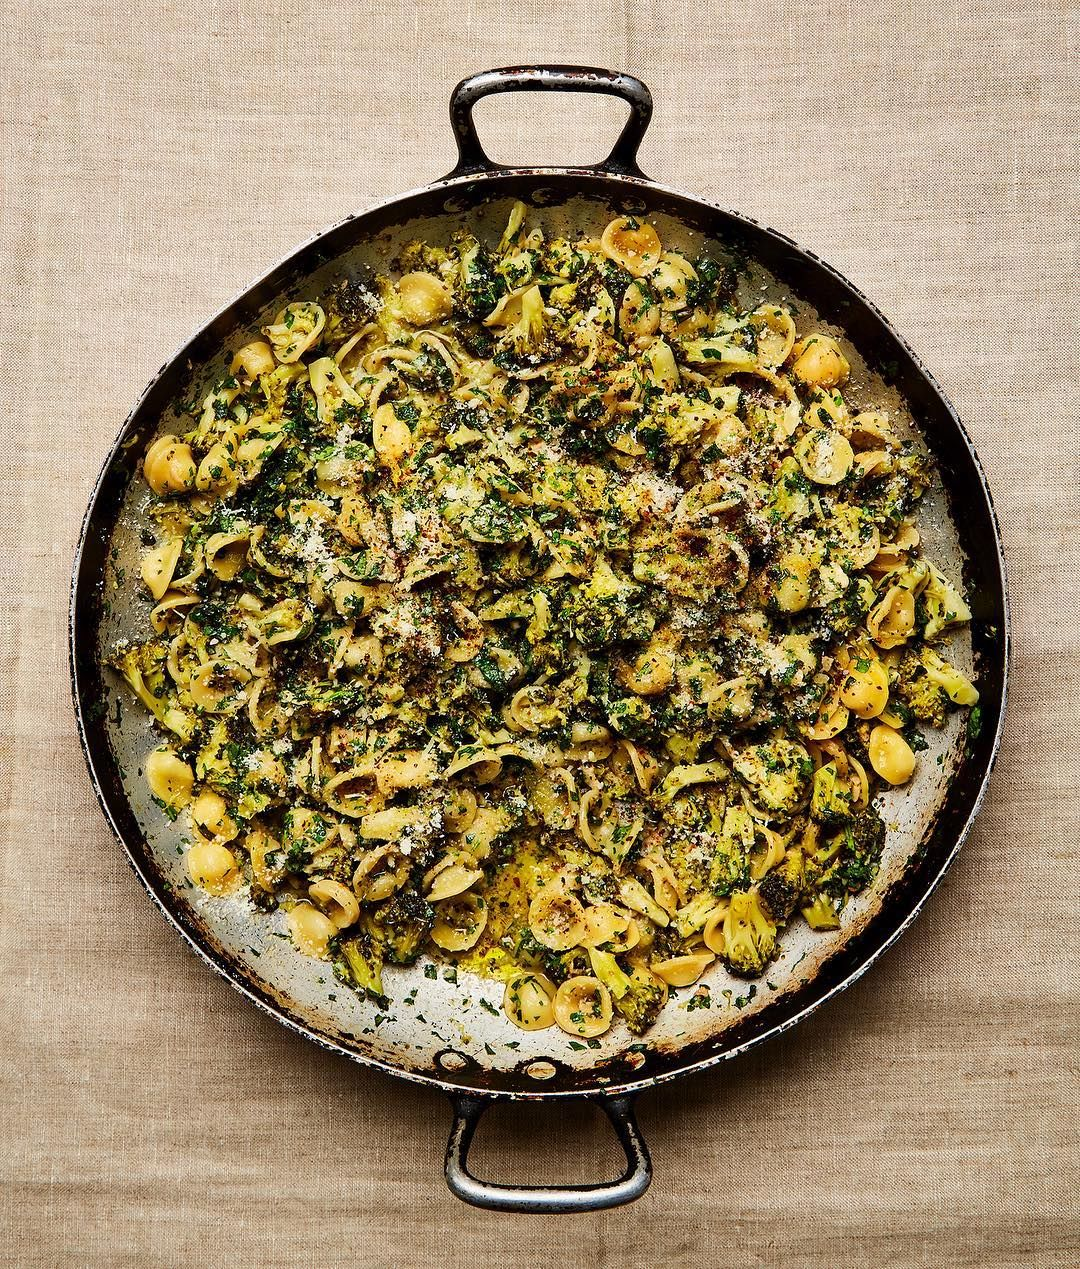 Yotam Ottolenghi On Instagram Orecchiette With Broccoli And Rocket The Pasta Actually Cooks With The Broccoli Recipes Ottolenghi Recipes Yotam Ottolenghi